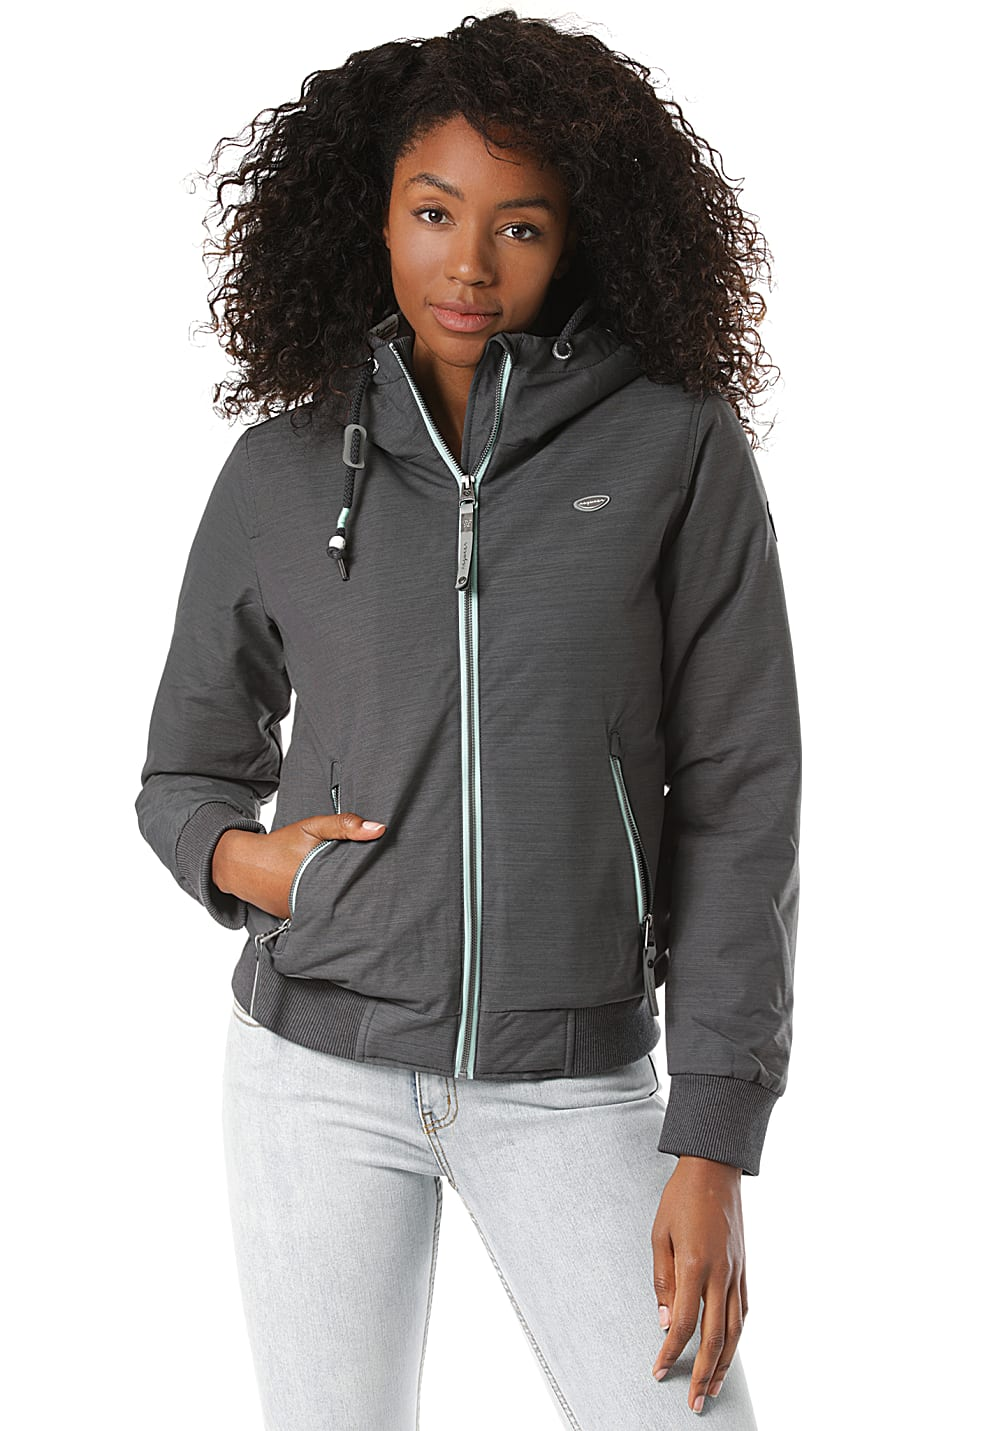 Jacken - ragwear Nuggie Slub Jacke für Damen Grau  - Onlineshop Planet Sports